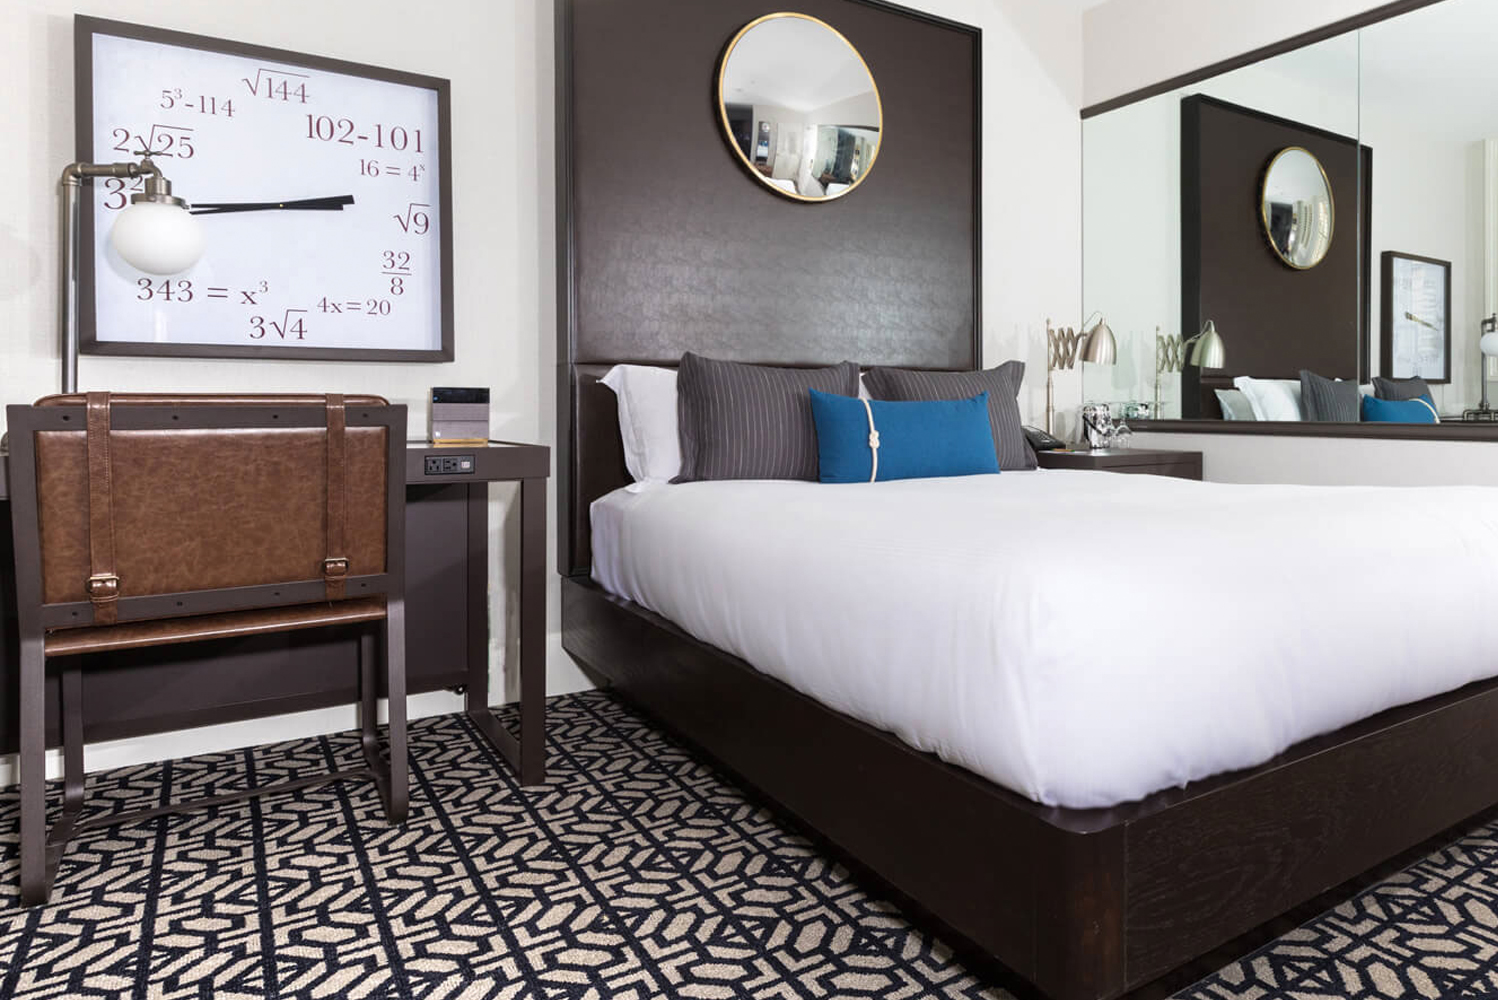 The renovation included 131 redesigned guestrooms and suites, and a brand-new lobby.